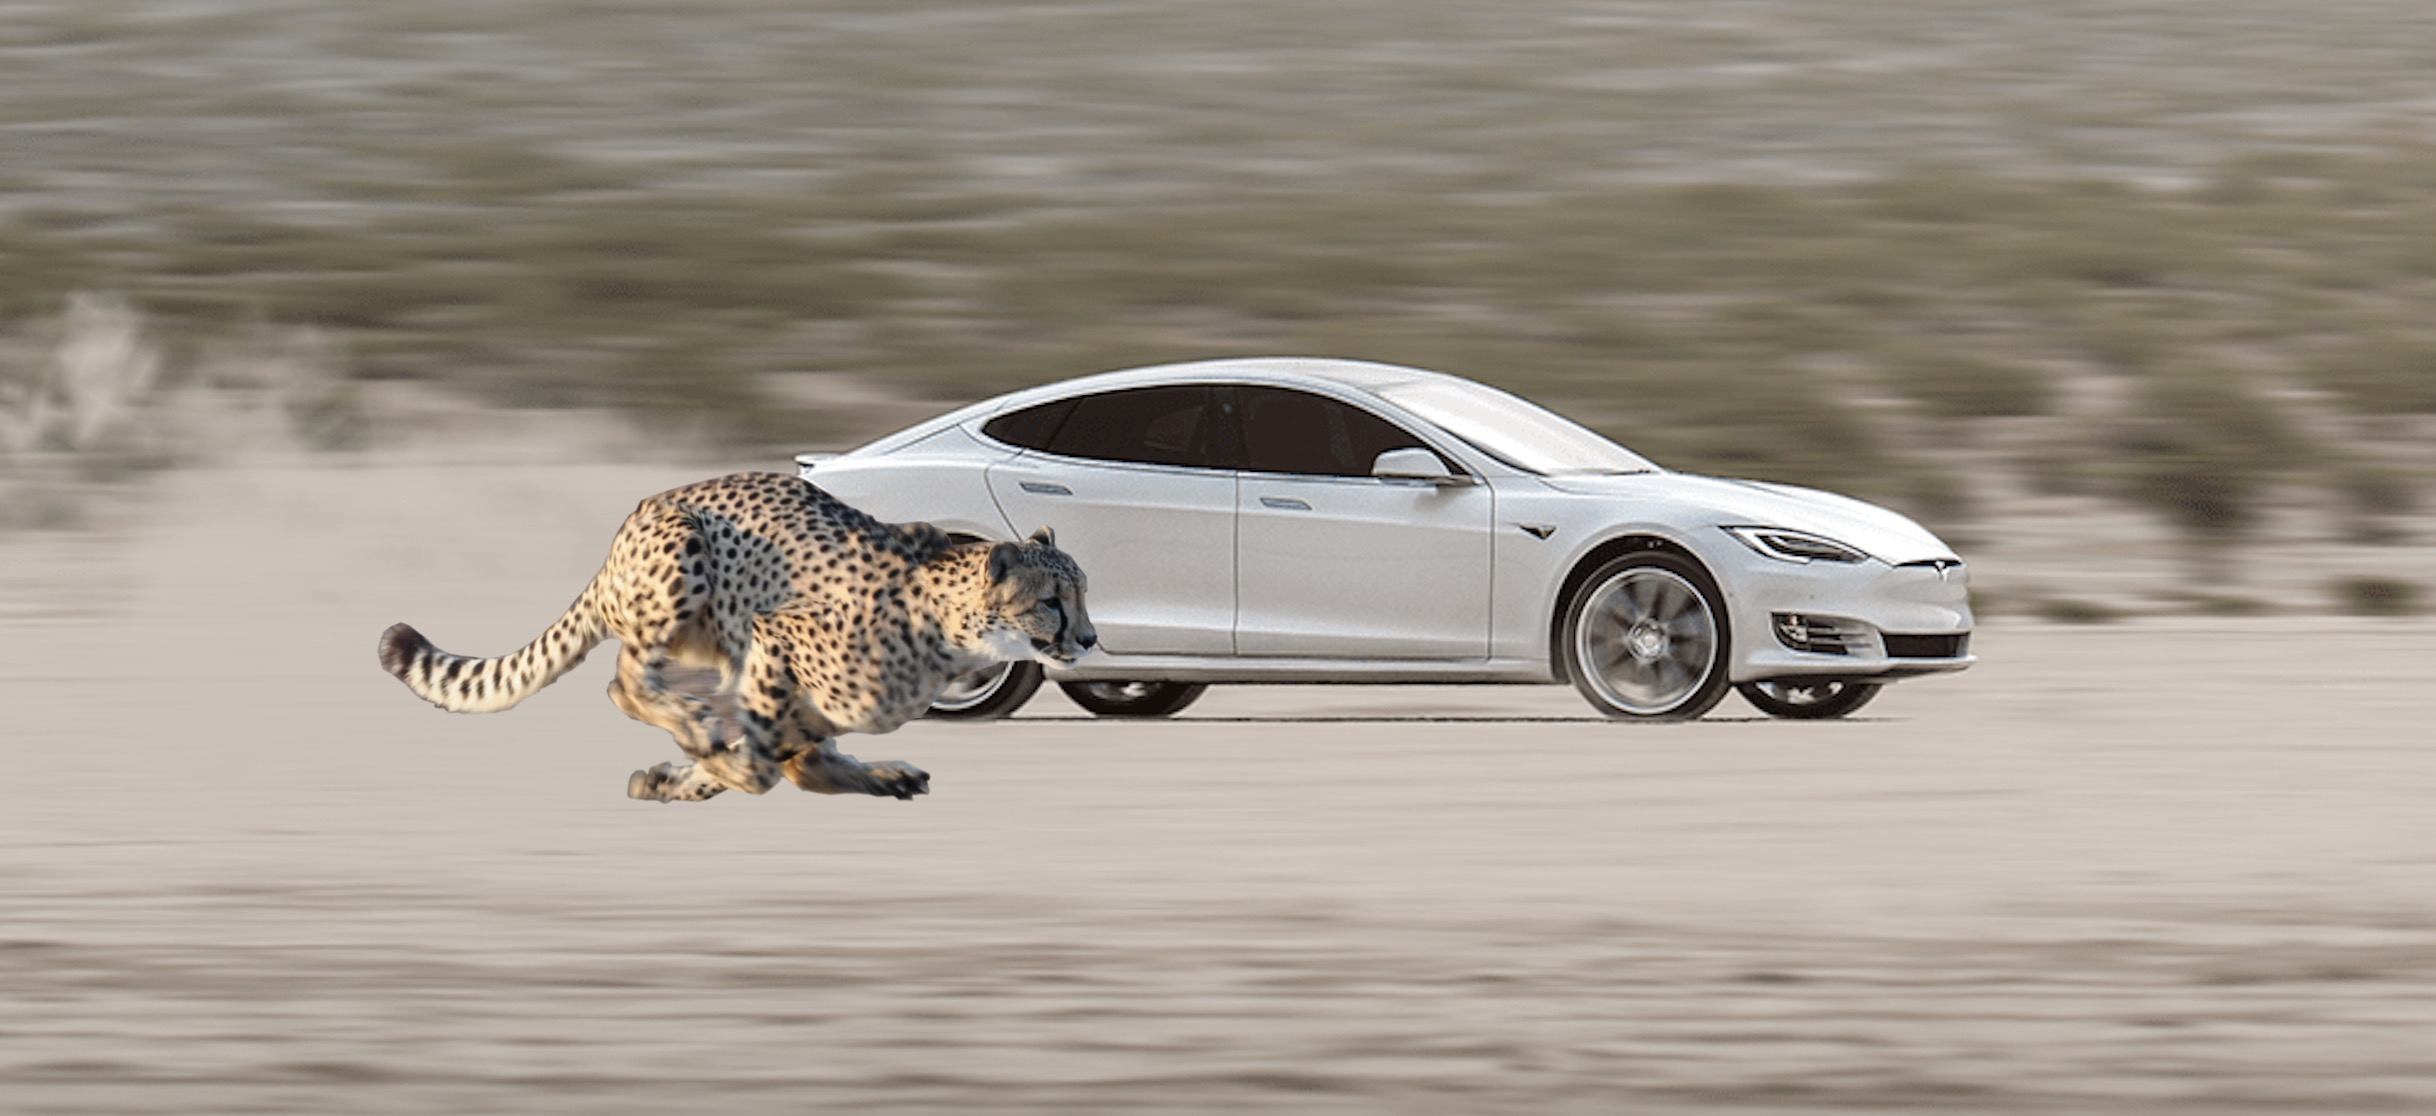 Tesla is working on something called 'Cheetah stance' for the perfect launch - Electrek